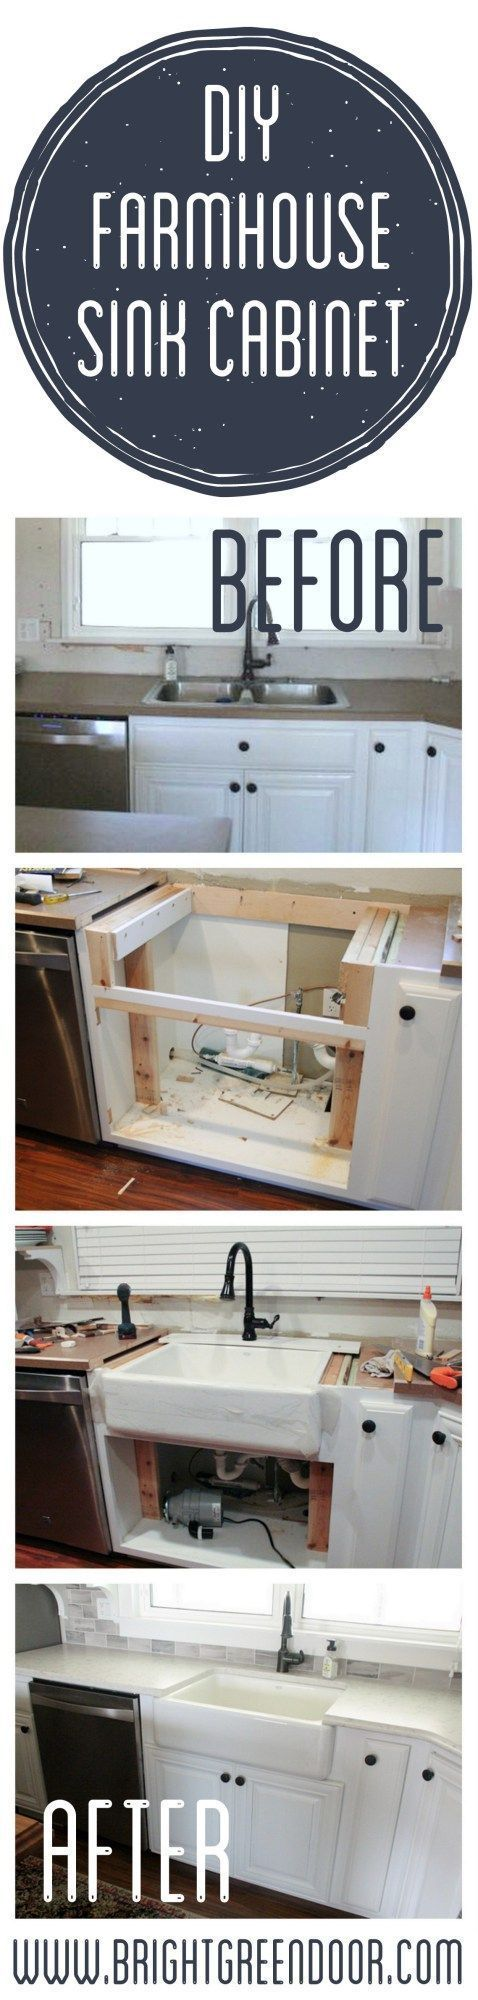 36 quot sink base kitchen cabinet momplex vanilla kitchen diy projects - Diy How To Install A Farmhouse Sink This Post Shows How A Cabinet Was